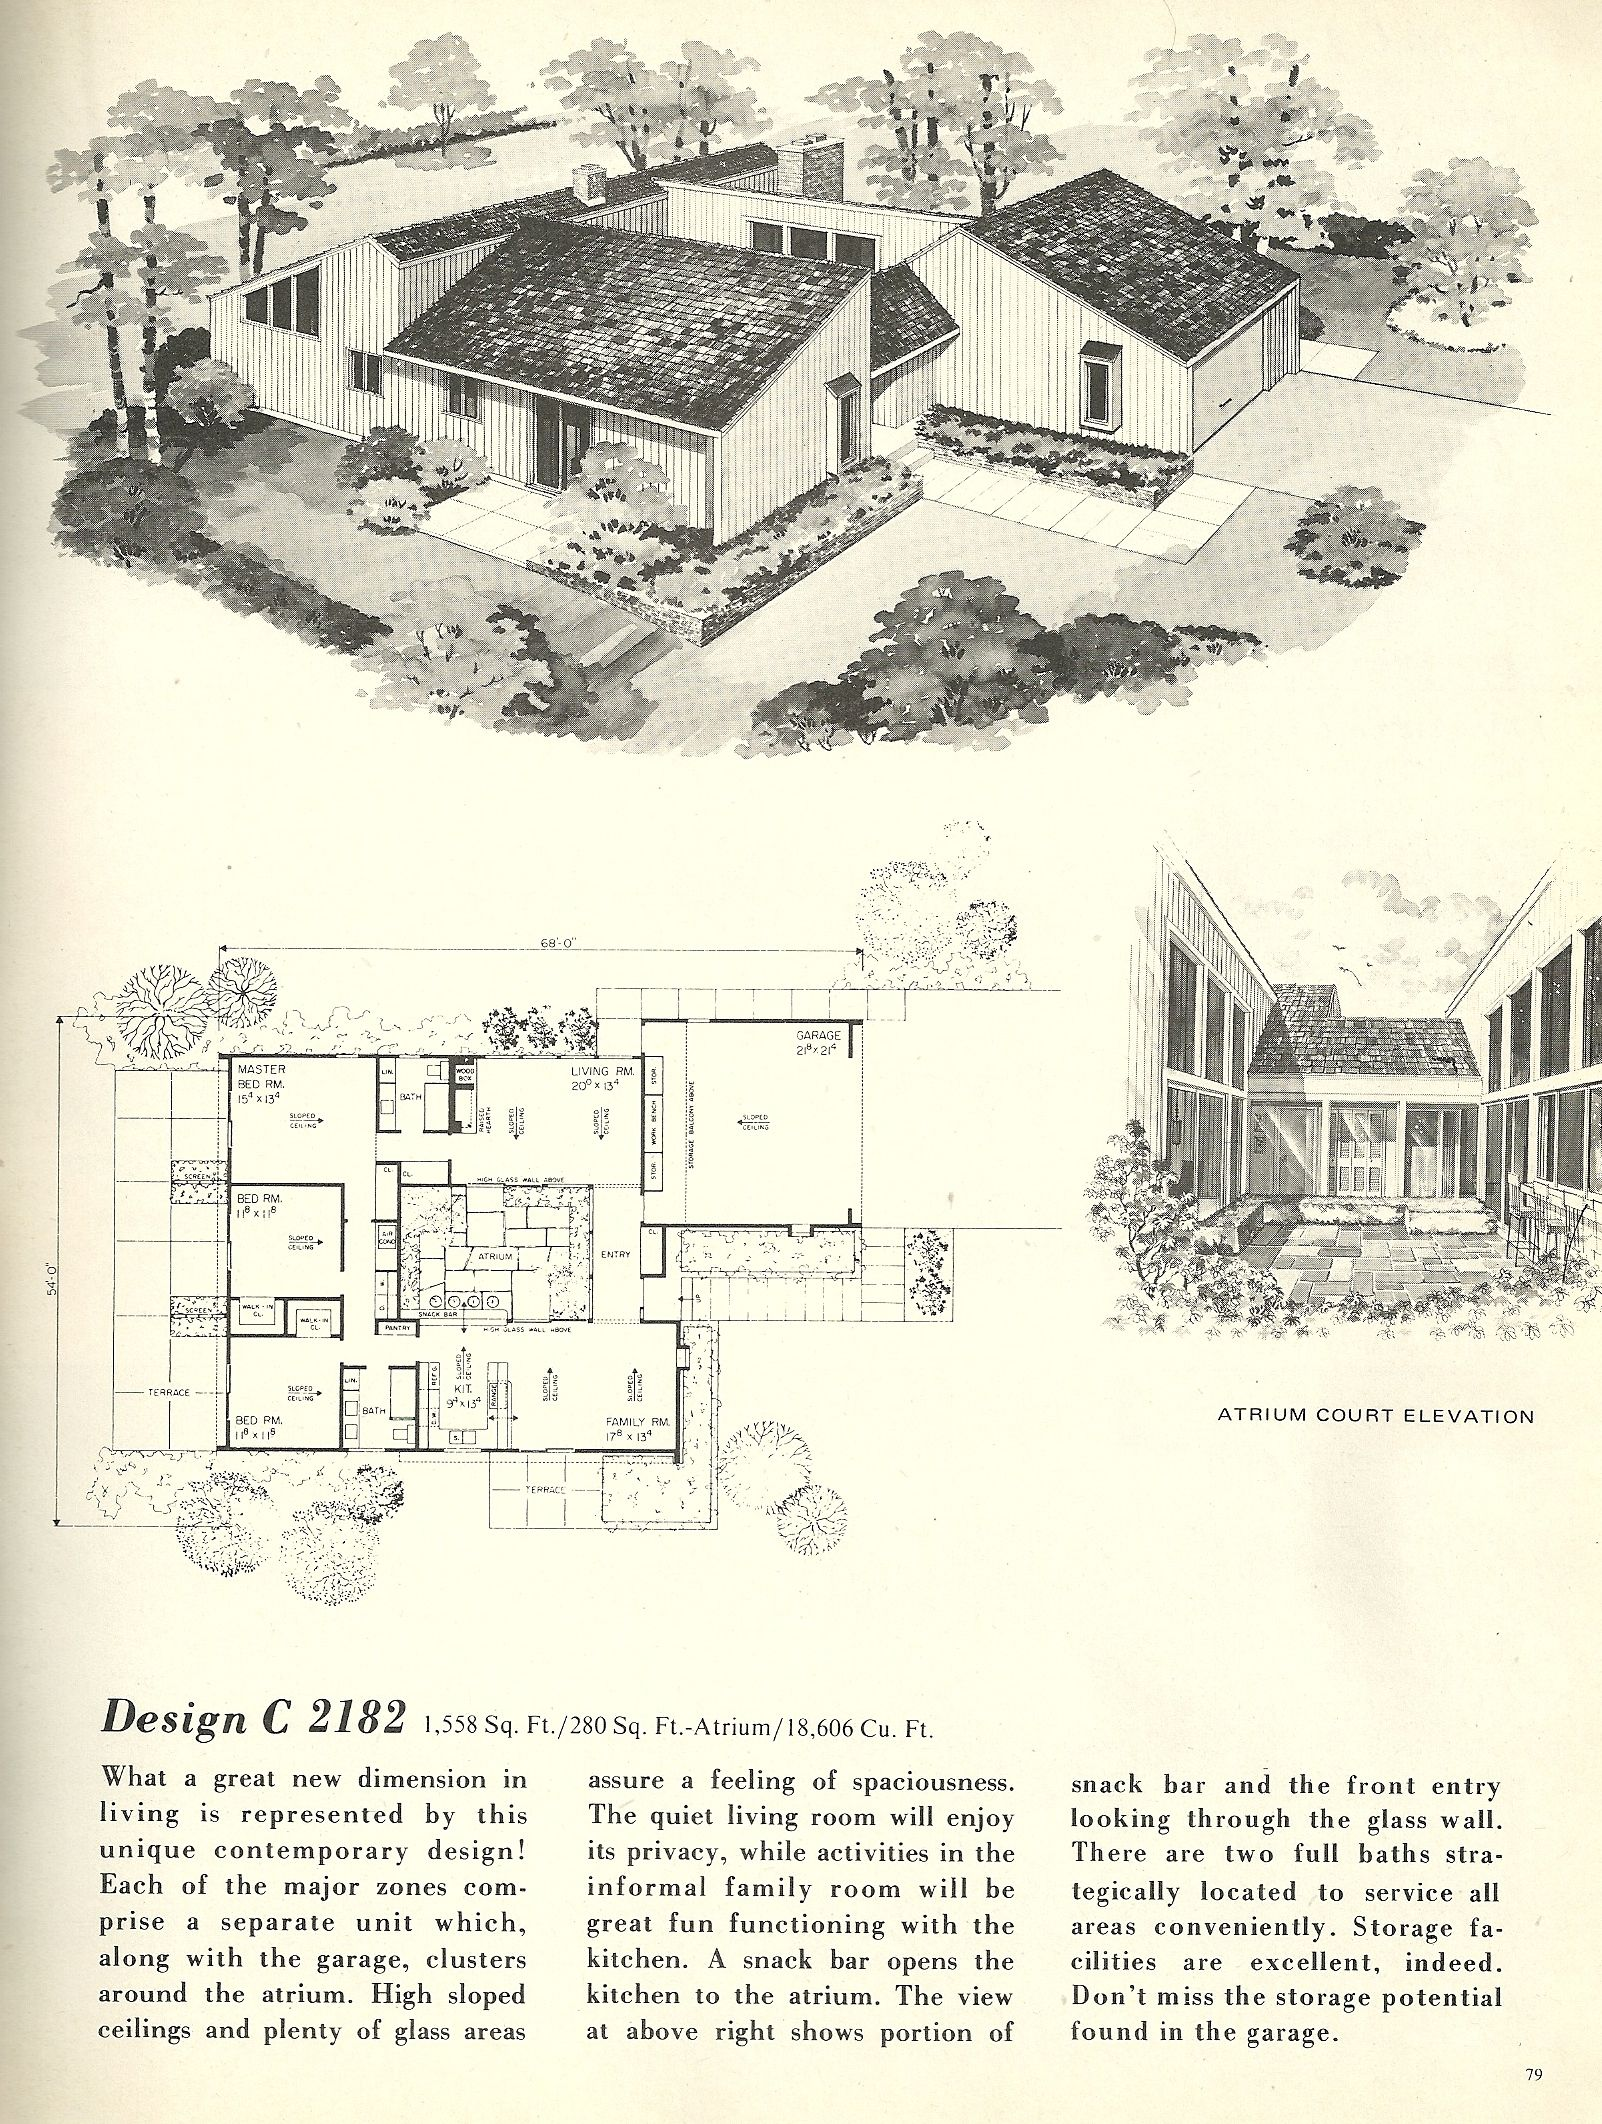 Vintage House Plans 2182 Mid Century Modern House Plans Modern House Plans Modern Floor Plans